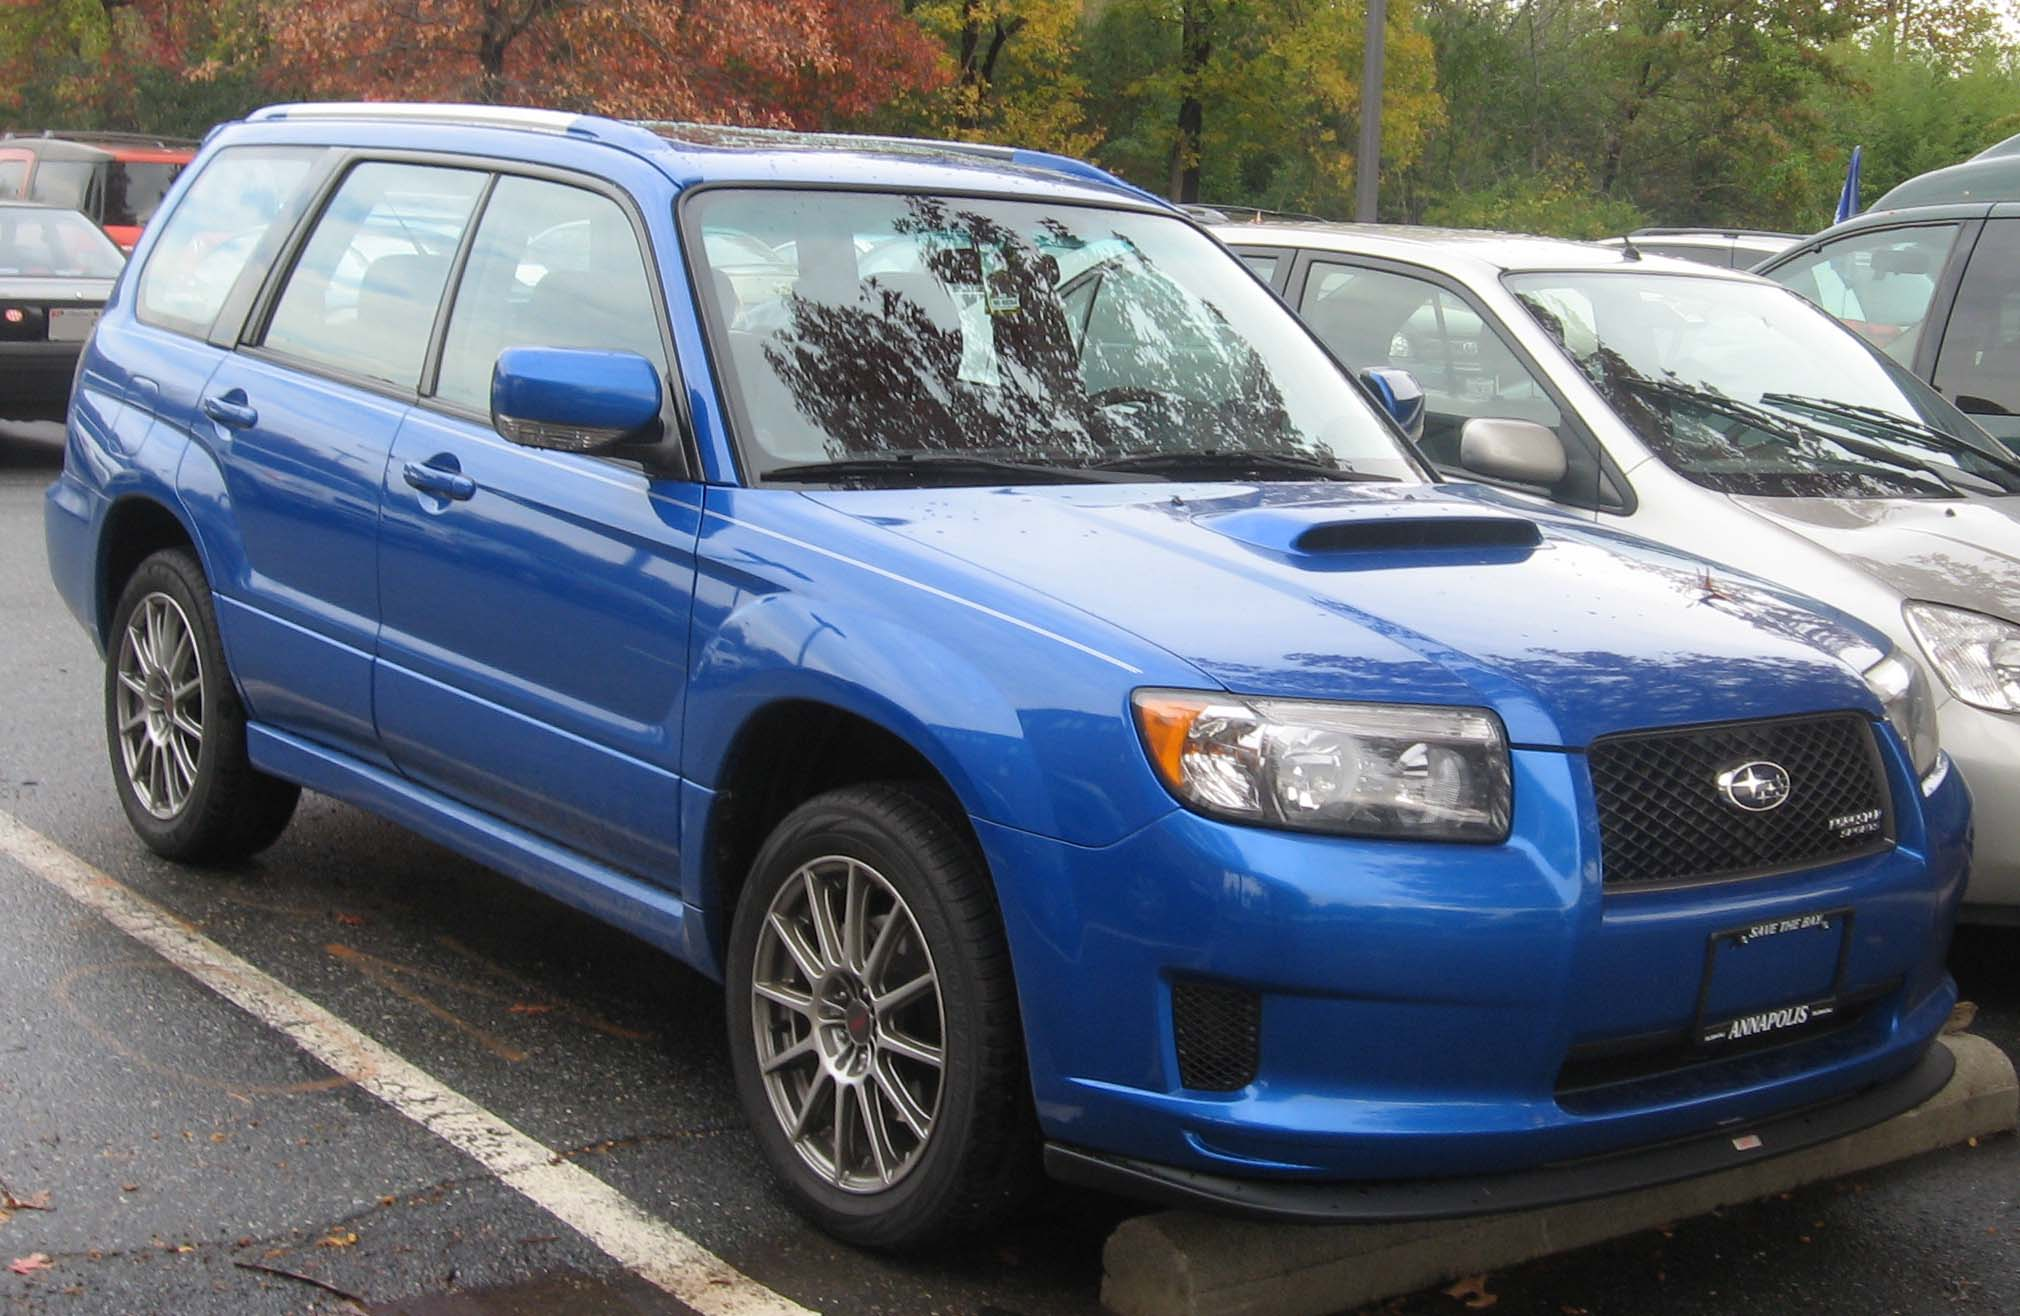 Subaru Forester Towing Capacity >> File:06-08 Subaru Forester 2.5XT Sports.jpg - Wikimedia Commons